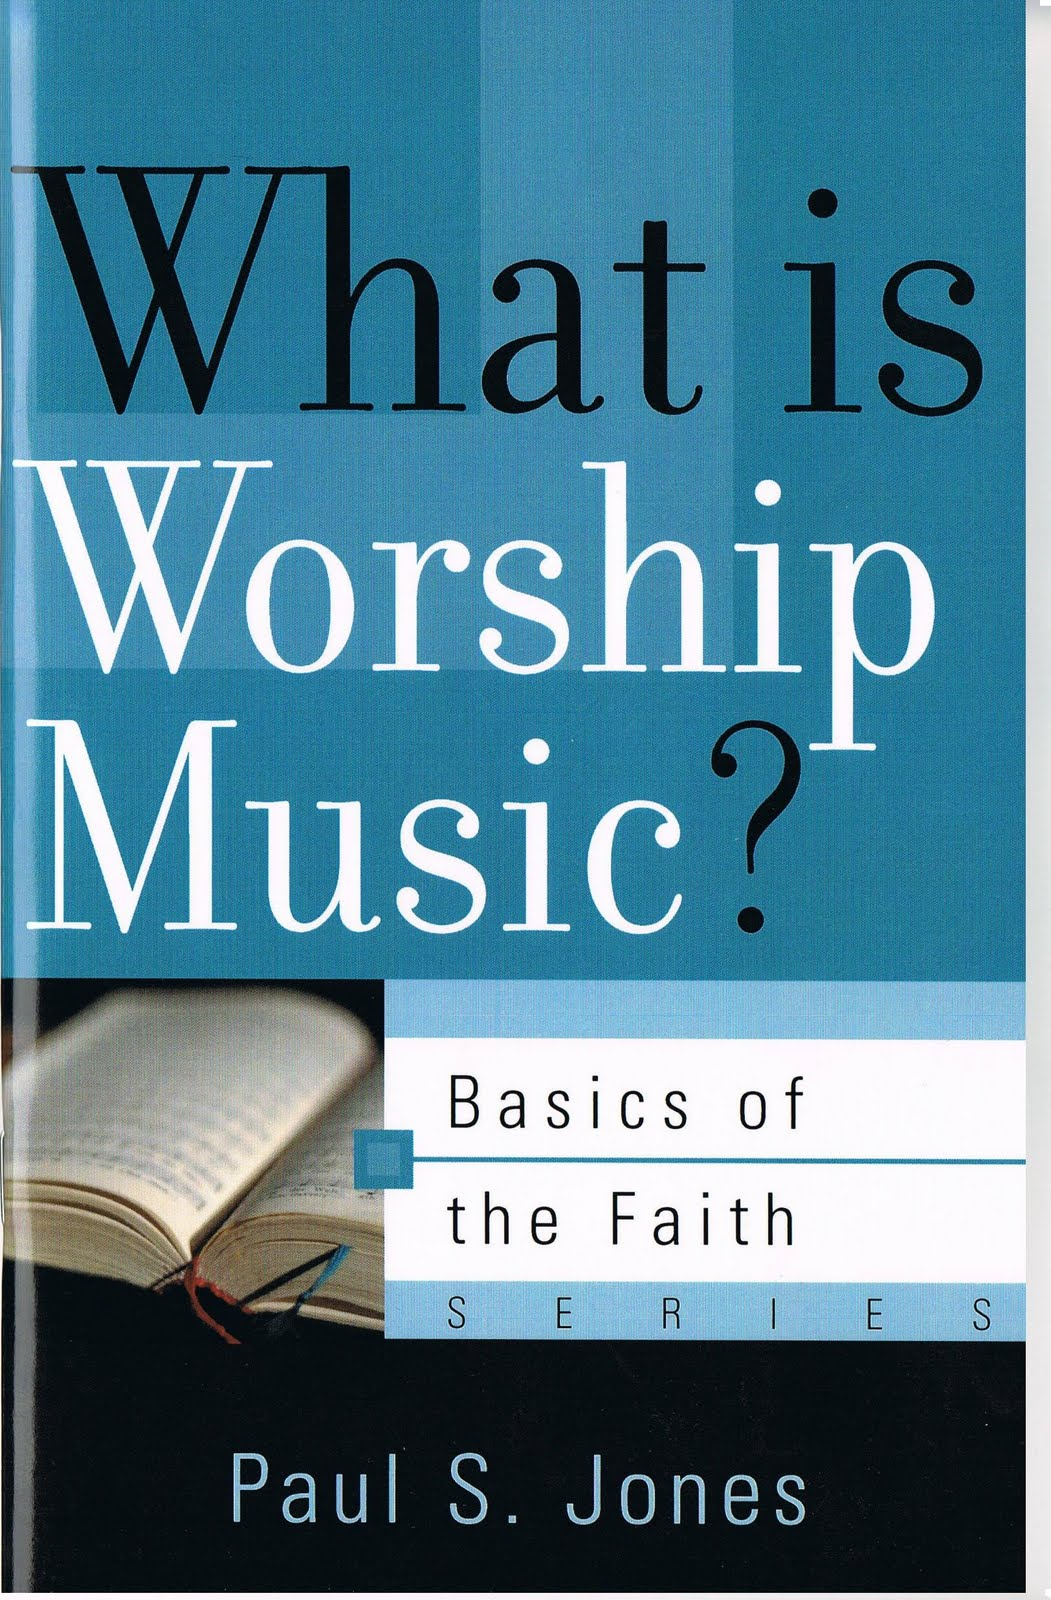 conservative christian book reviews book review of what is worship music by paul s jones